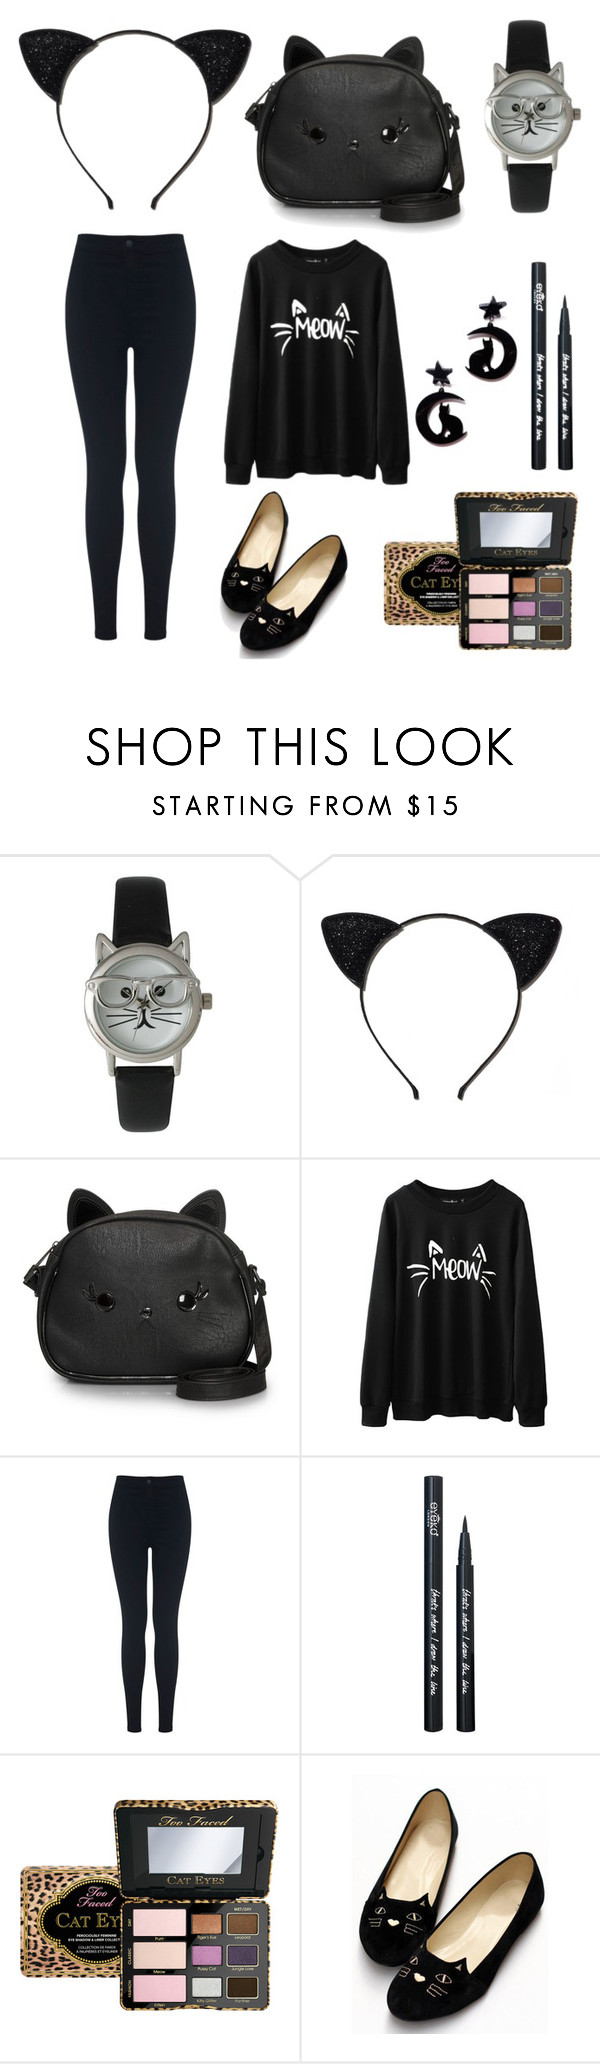 """cat look《meow》"" by cassi-h ❤ liked on Polyvore featuring Olivia Pratt, Felina, Loungefly, Miss Selfridge, Eyeko and Too Faced Cosmetics"